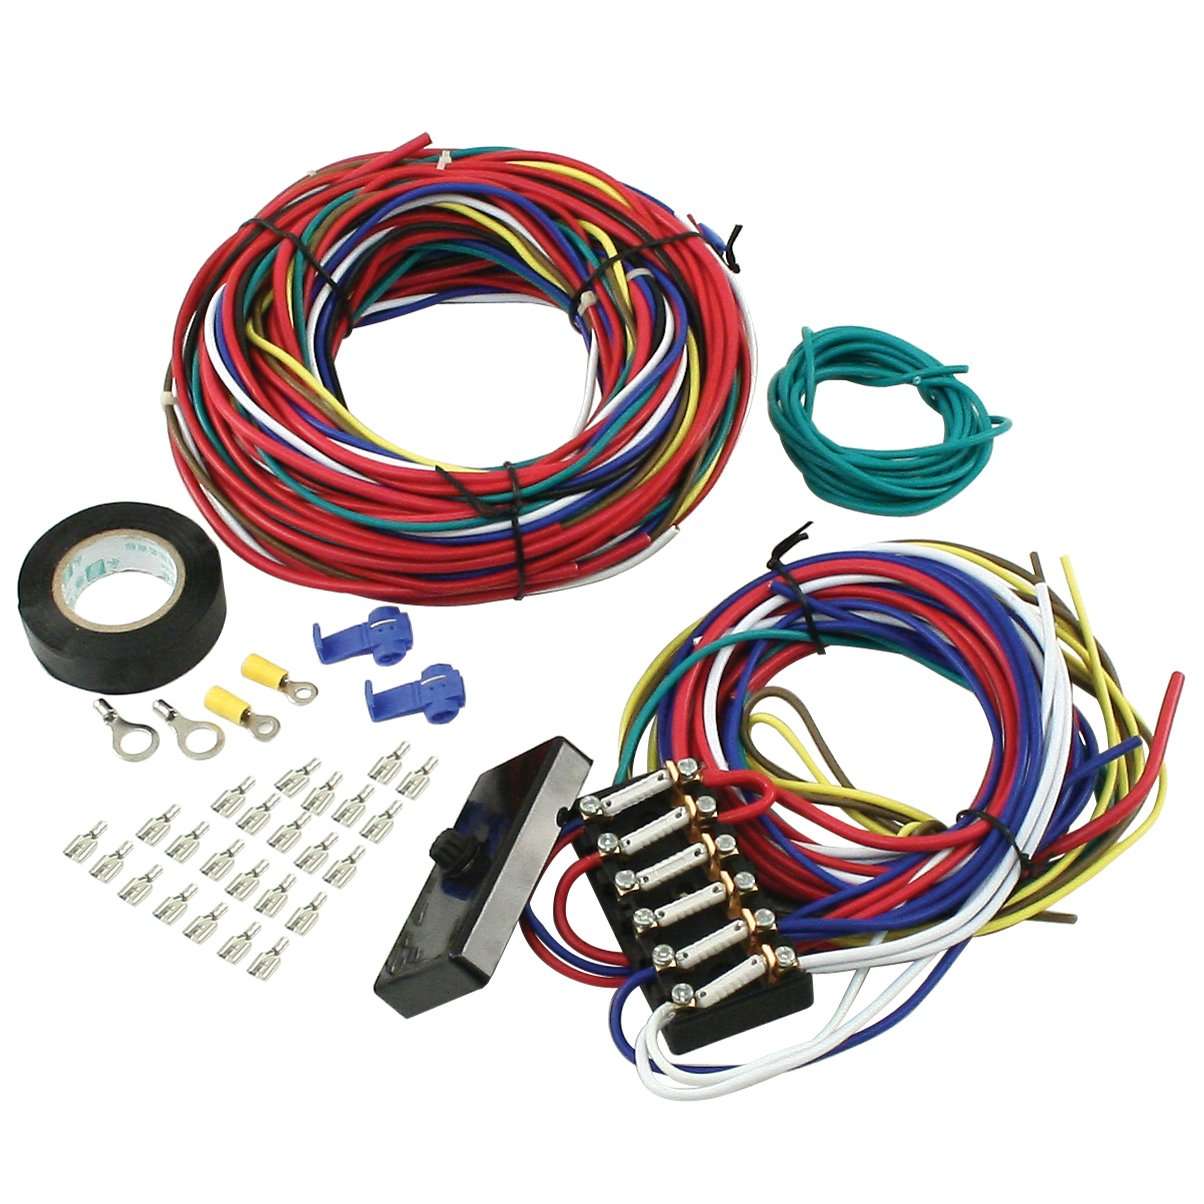 712Fyt3MSiL._SL1204_ amazon com empi 00 9466 0 wire loom kit, vw buggy, sand rail sand rail wiring harness at readyjetset.co